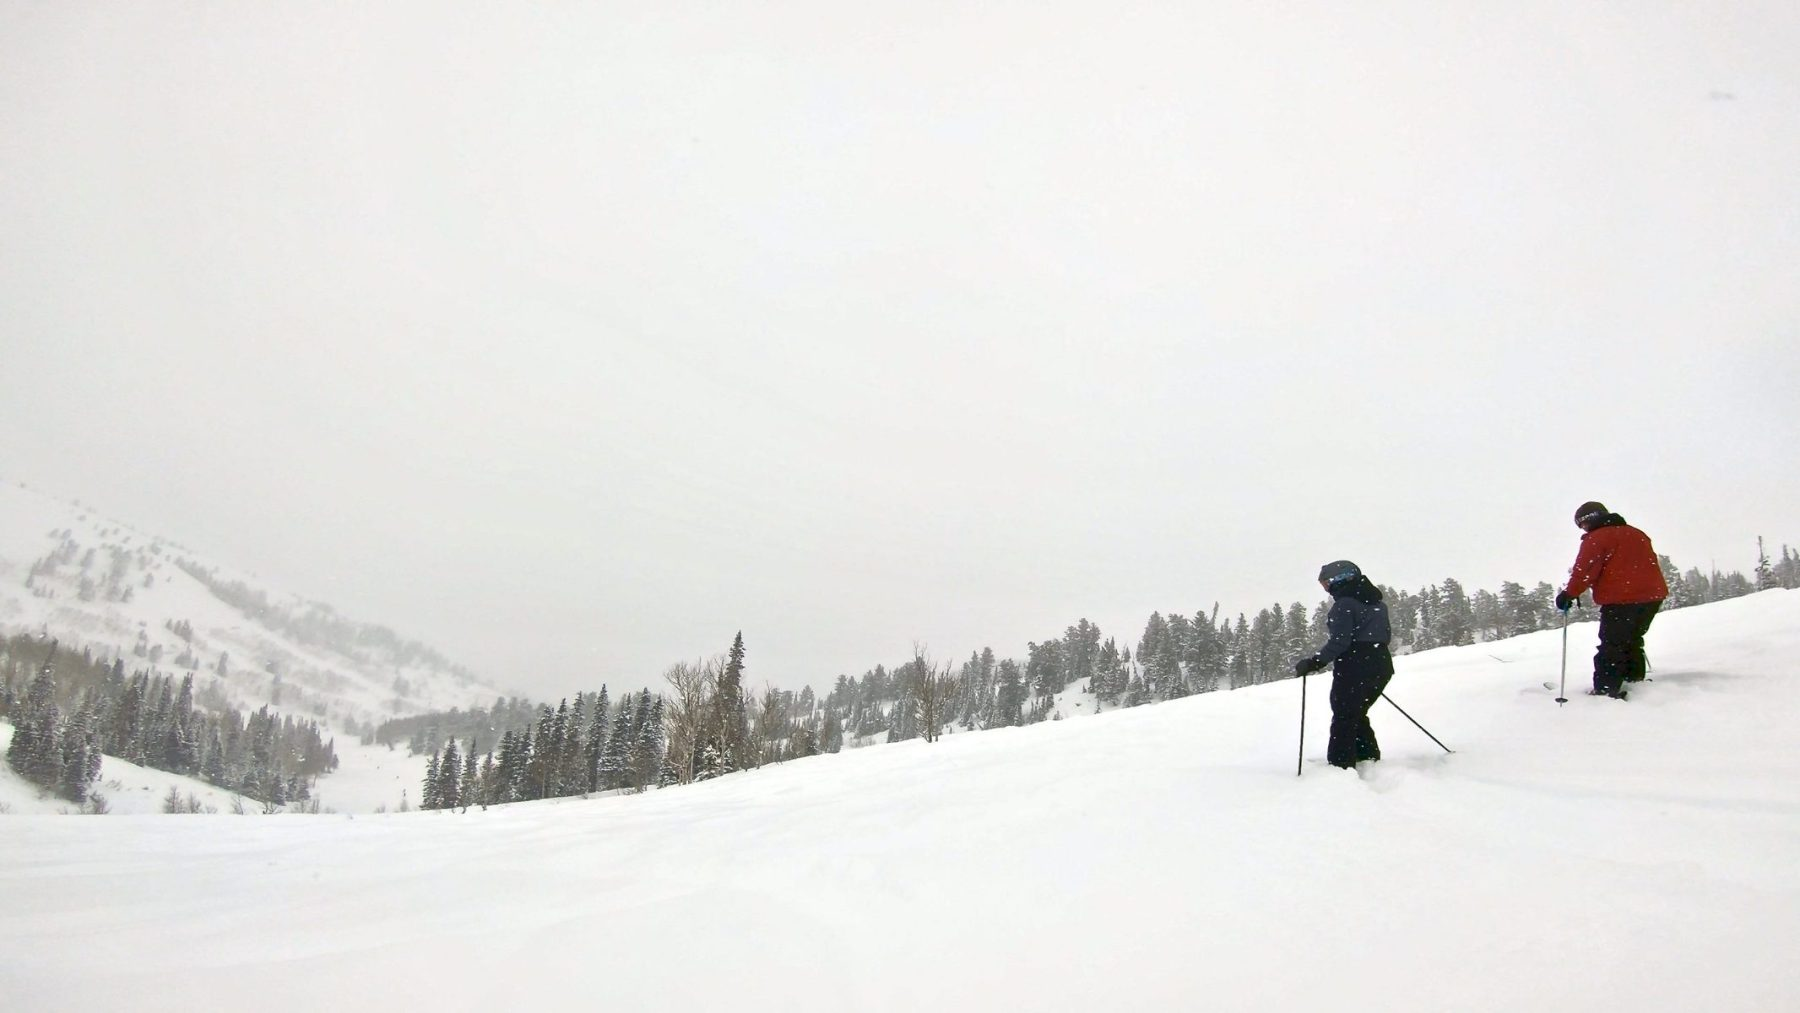 This is why they call it Pow Mow!  Look at how deep it is!